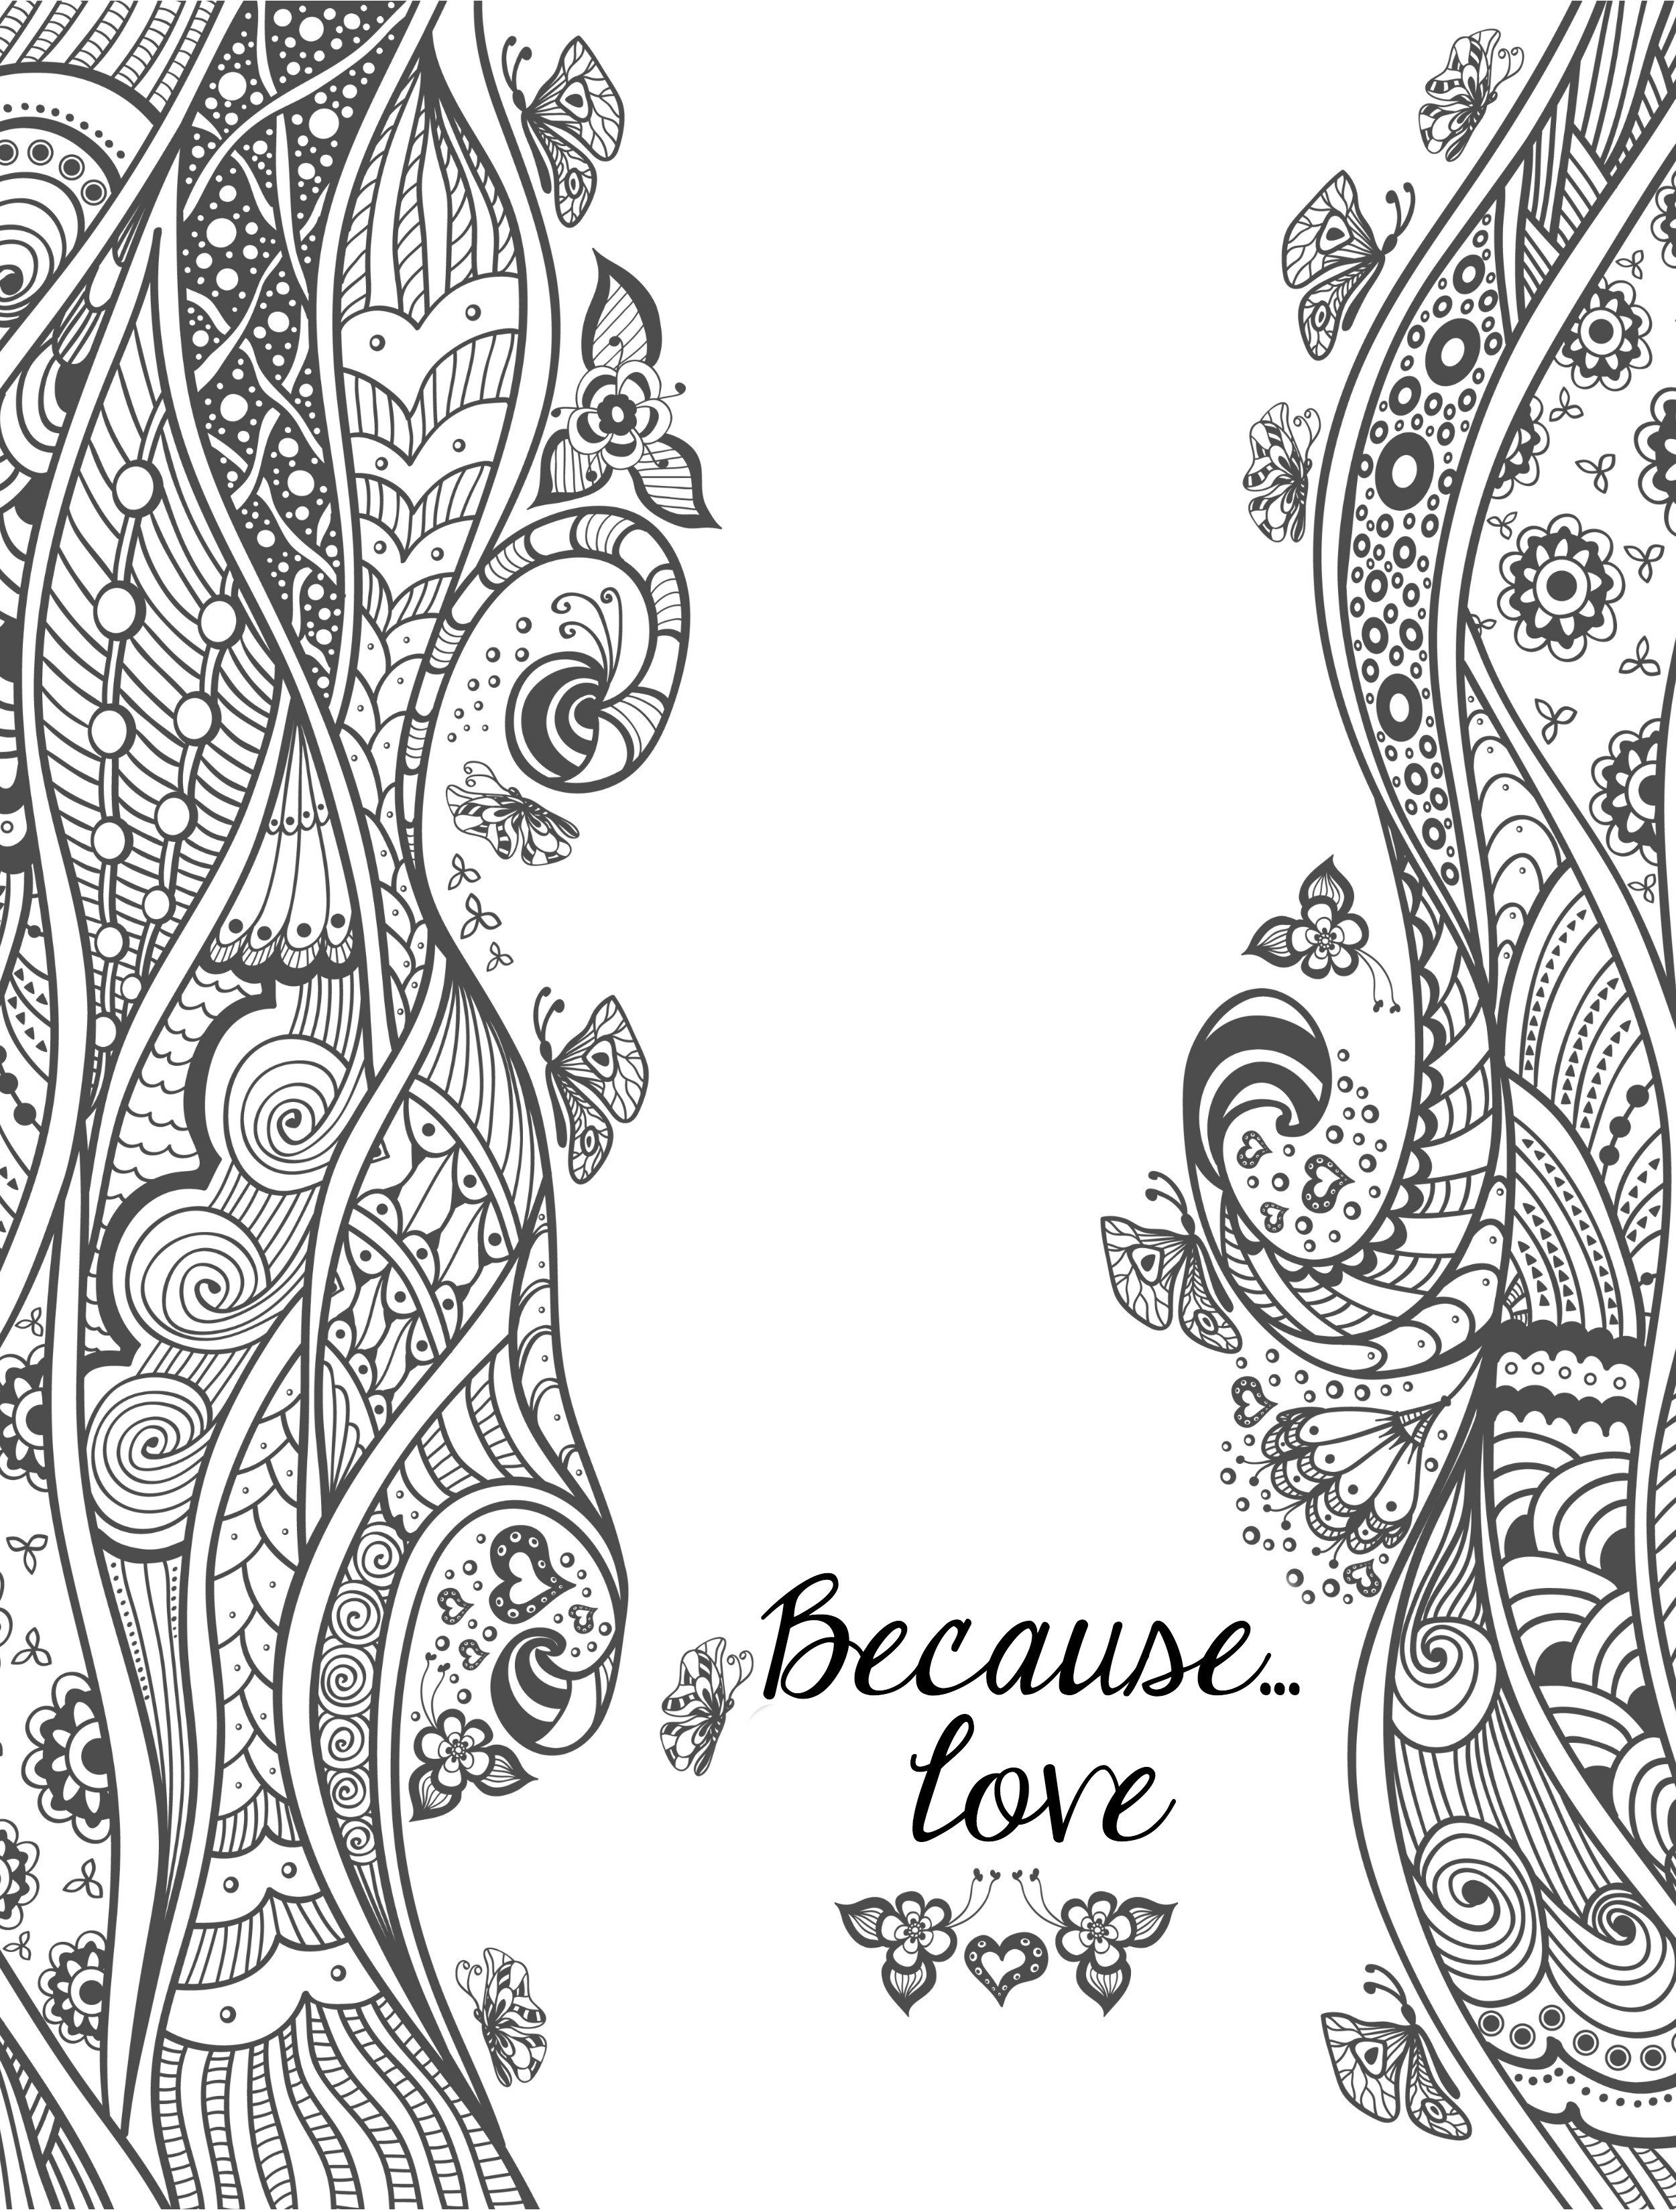 20 Free Printable Valentines Adult Coloring Pages - Page 5 of 20